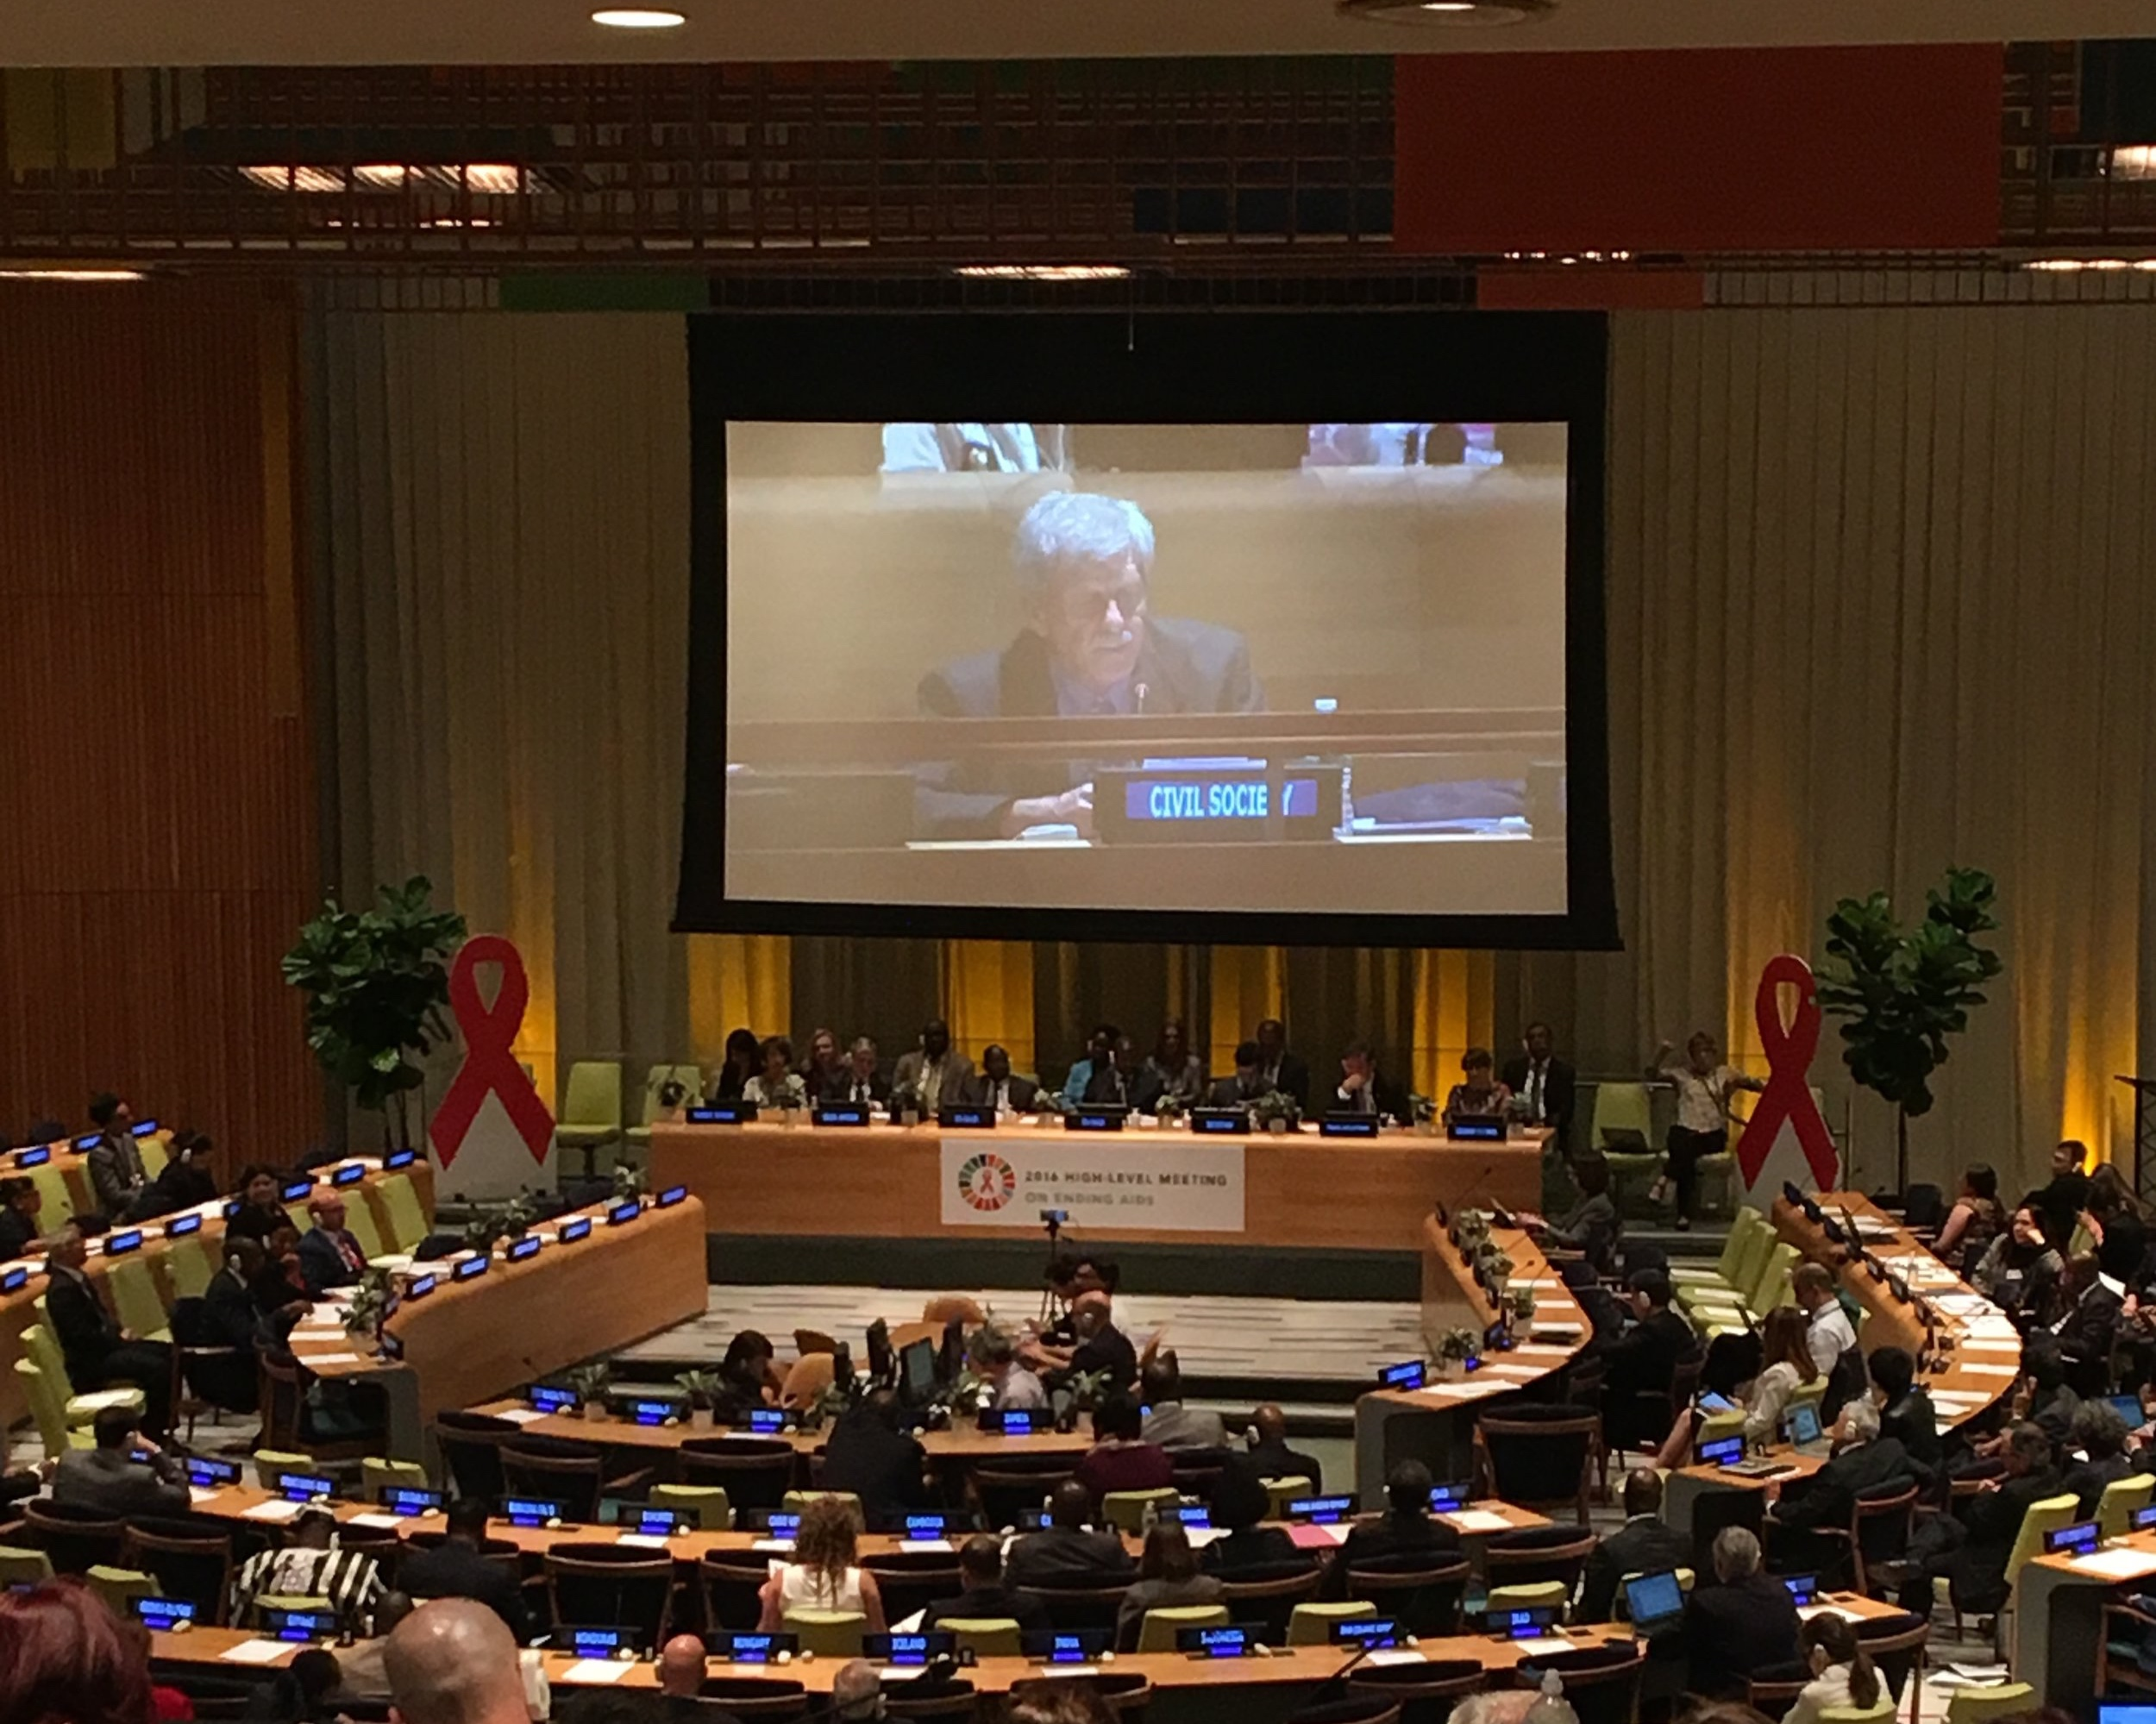 Barstow addresses the United Nations High Level Meeting on AIDS in 2016